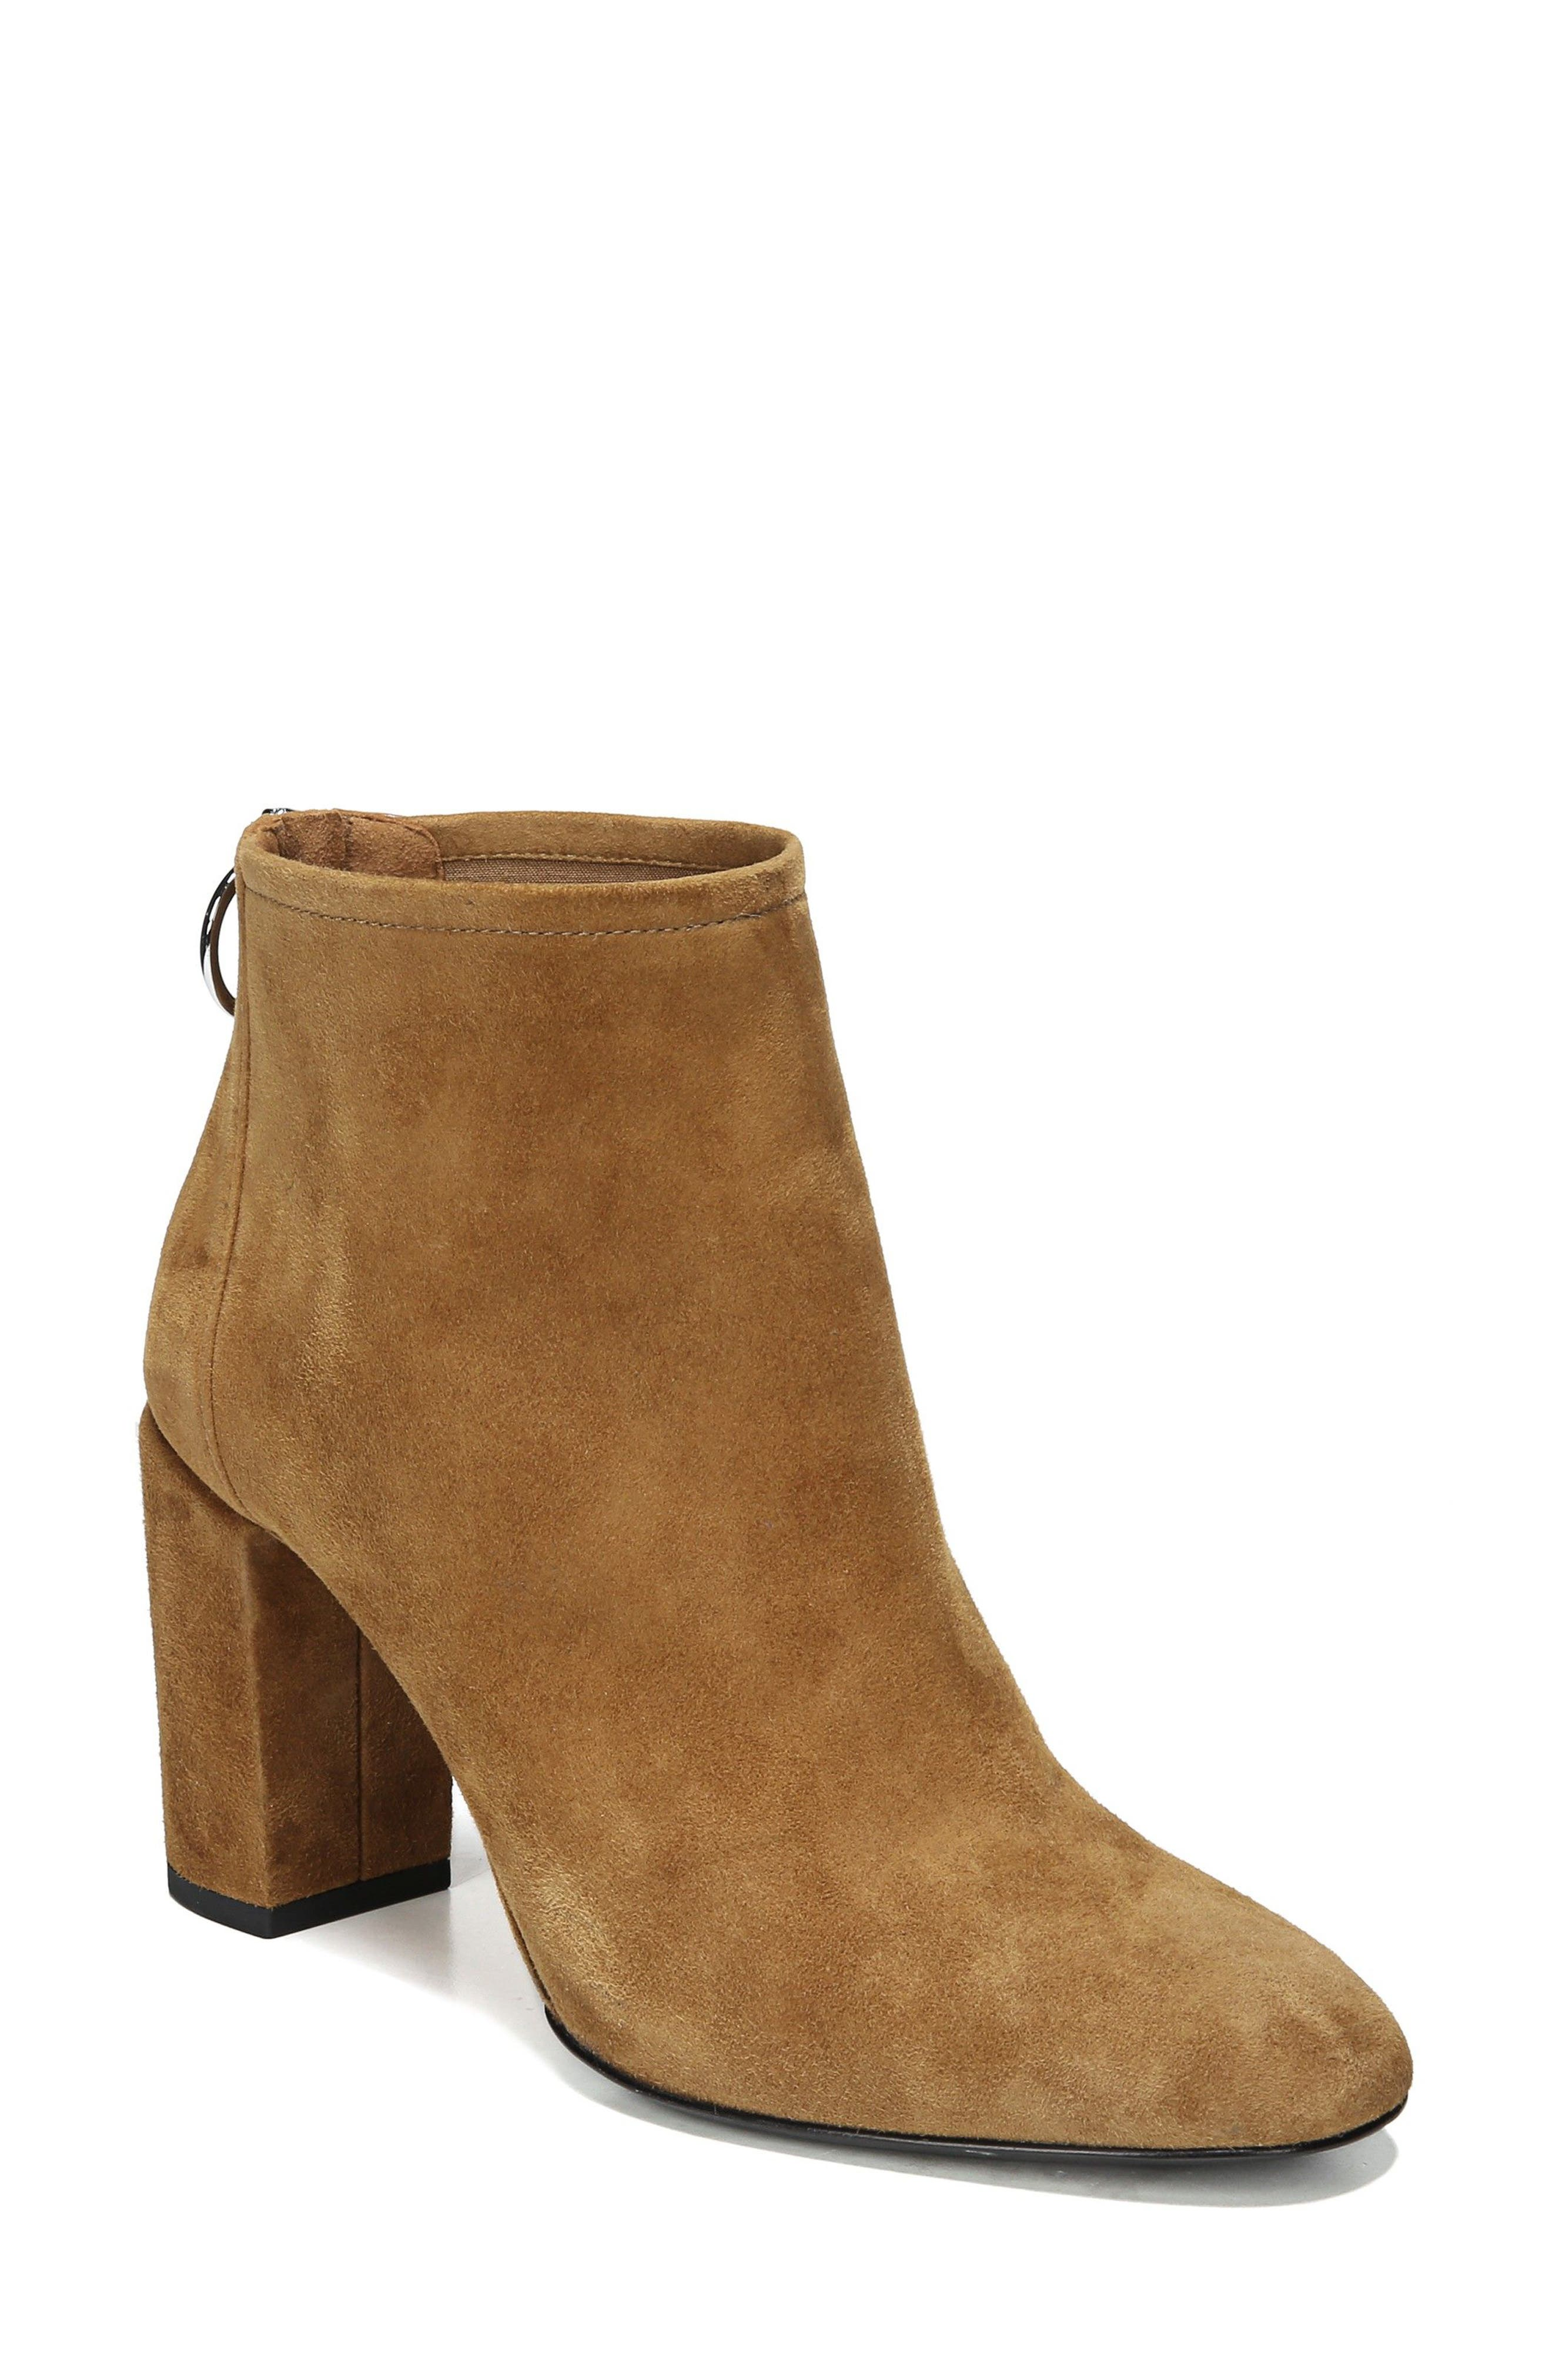 Nadia Bootie,                             Main thumbnail 1, color,                             Cuoio Suede